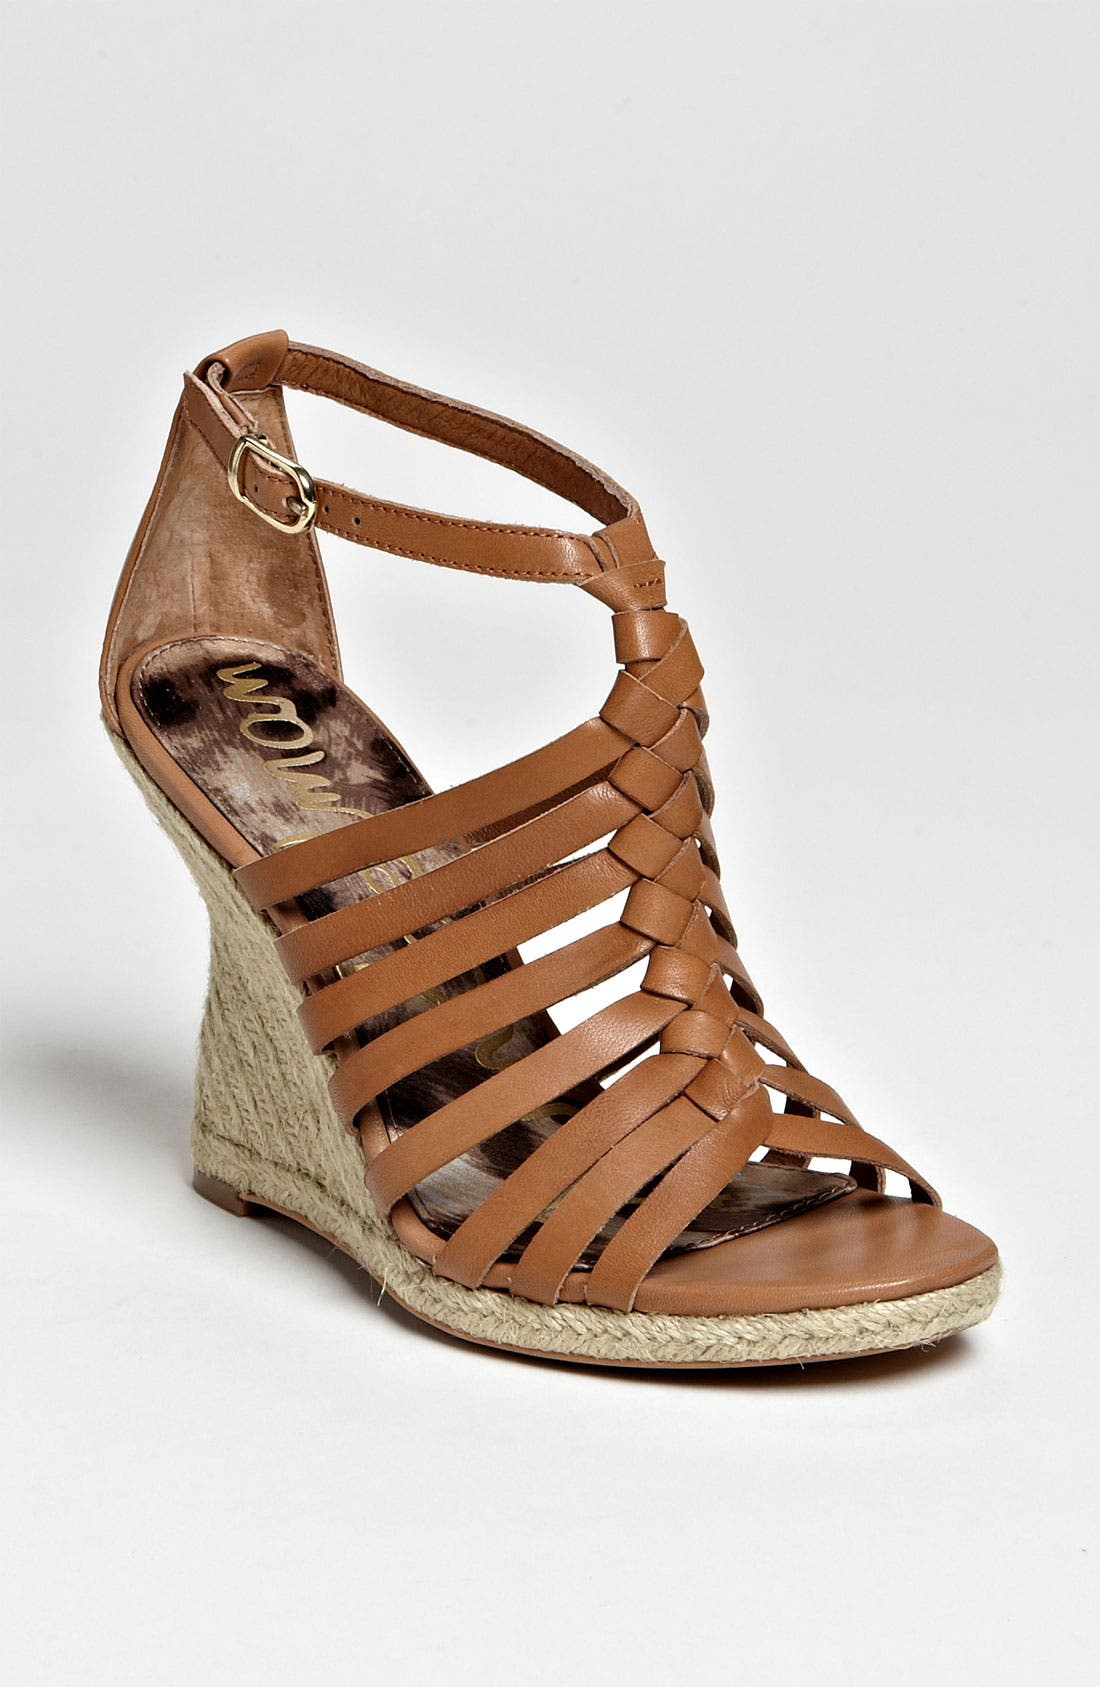 Alternate Image 1 Selected - Sam Edelman 'Annabell' Sandal (Online Exclusive)